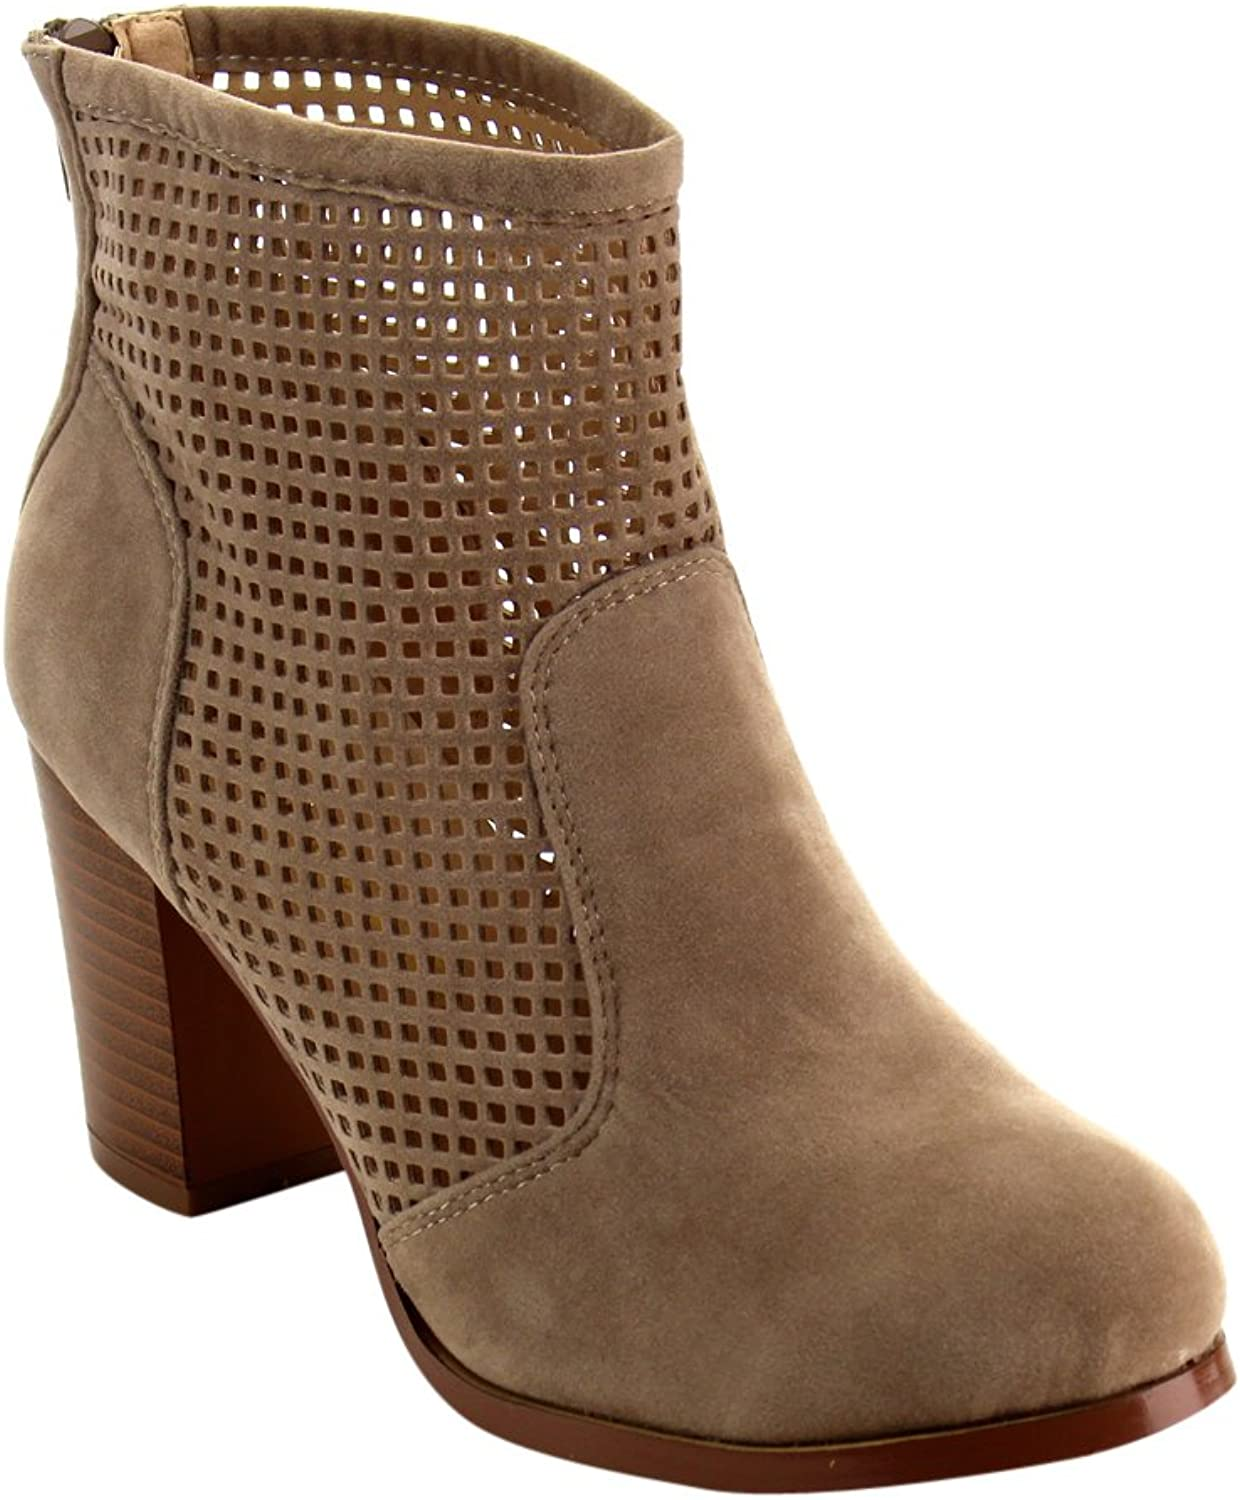 Chase & Chloe EC48 Women's Laser Cut Out Back Zipper Mid Stacked Ankle Booties